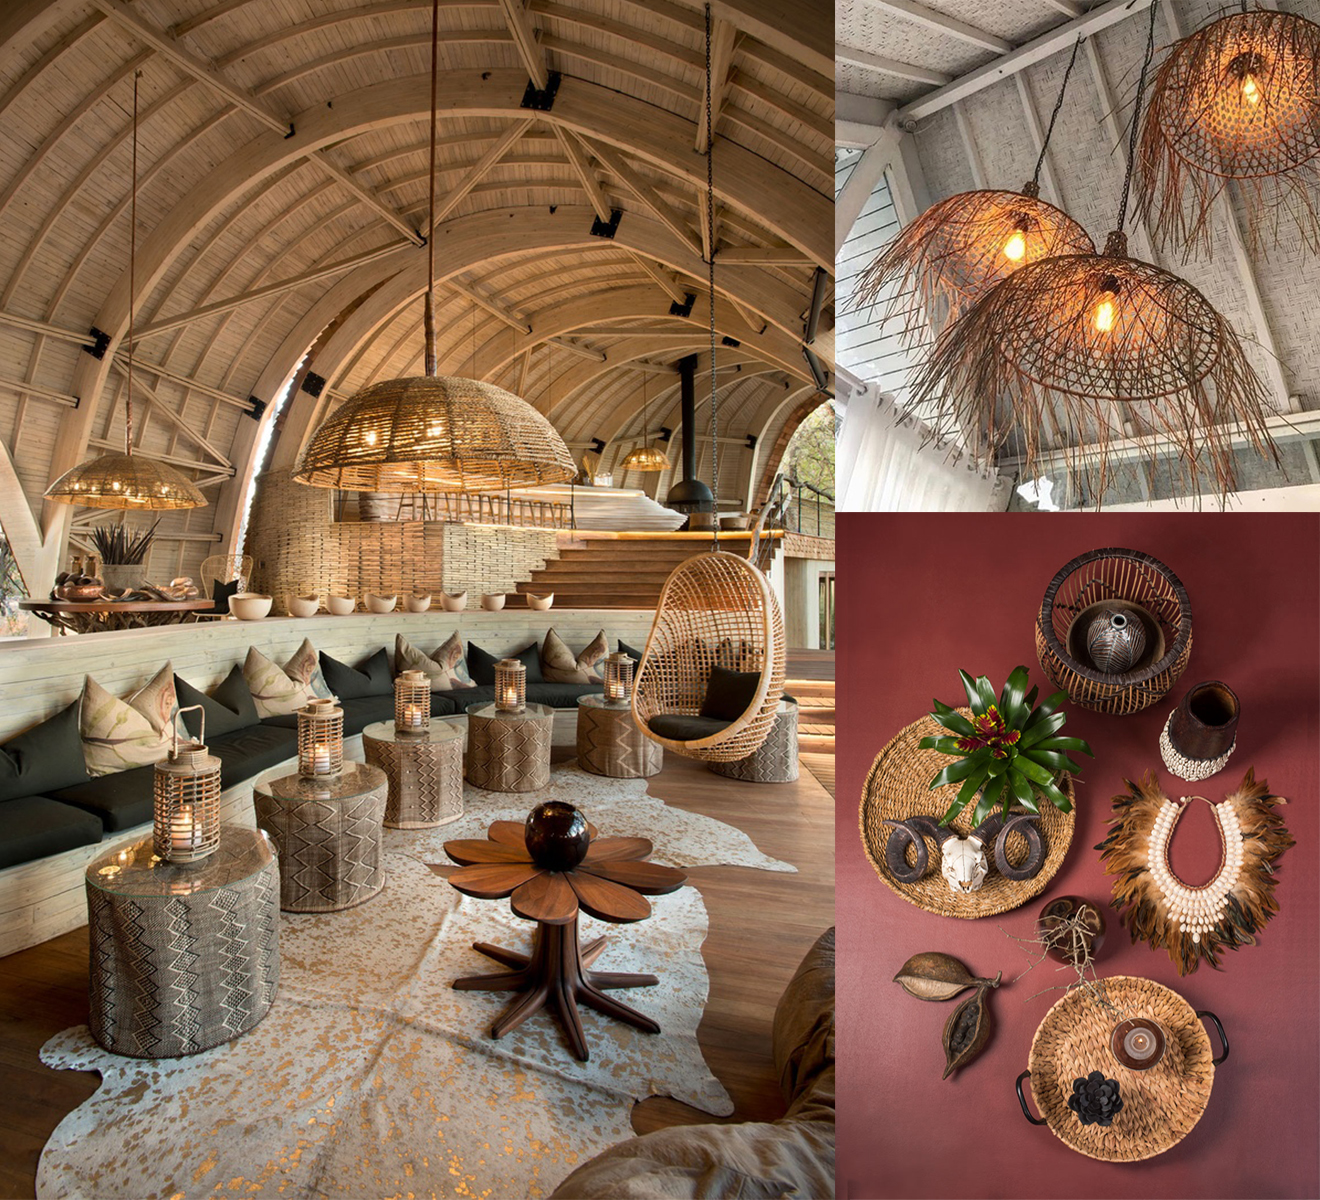 The rattan Interior of the &beyond Sandibe Safari Lodge in Botswana, the warm light of the rattan lights from Bazar Bizar and the woven baskets from Kersten arouse wanderlust to Africa.